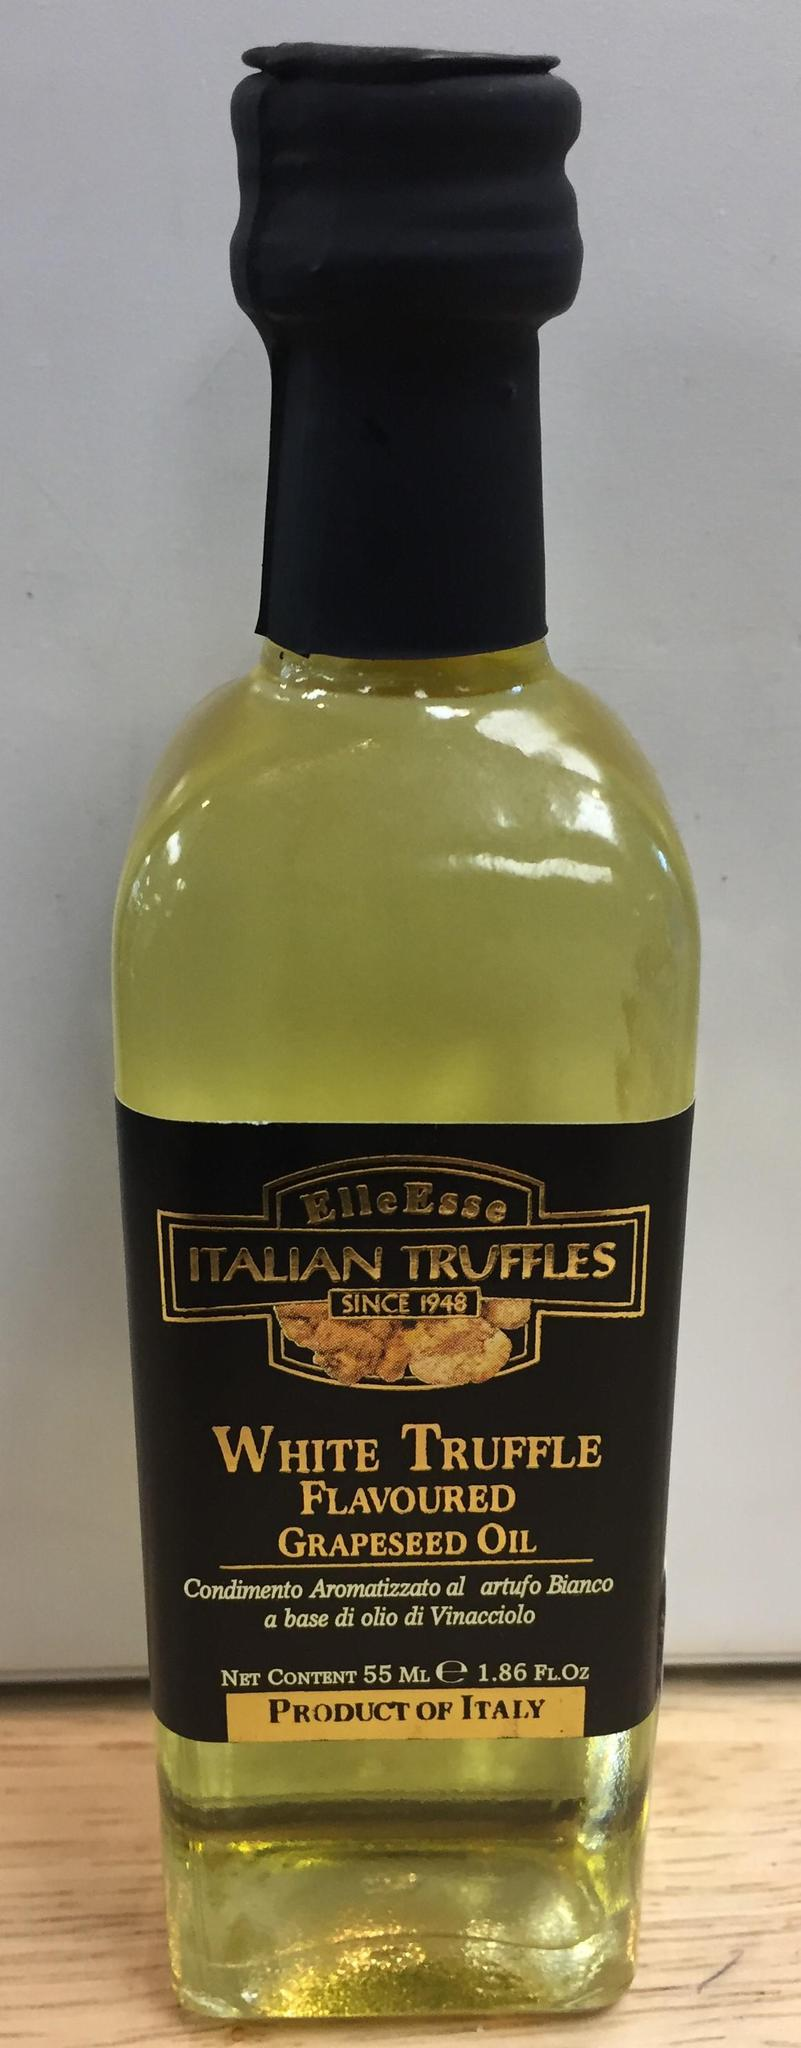 Elle Esse White Truffle Flavored Grapeseed Oil  55 ML